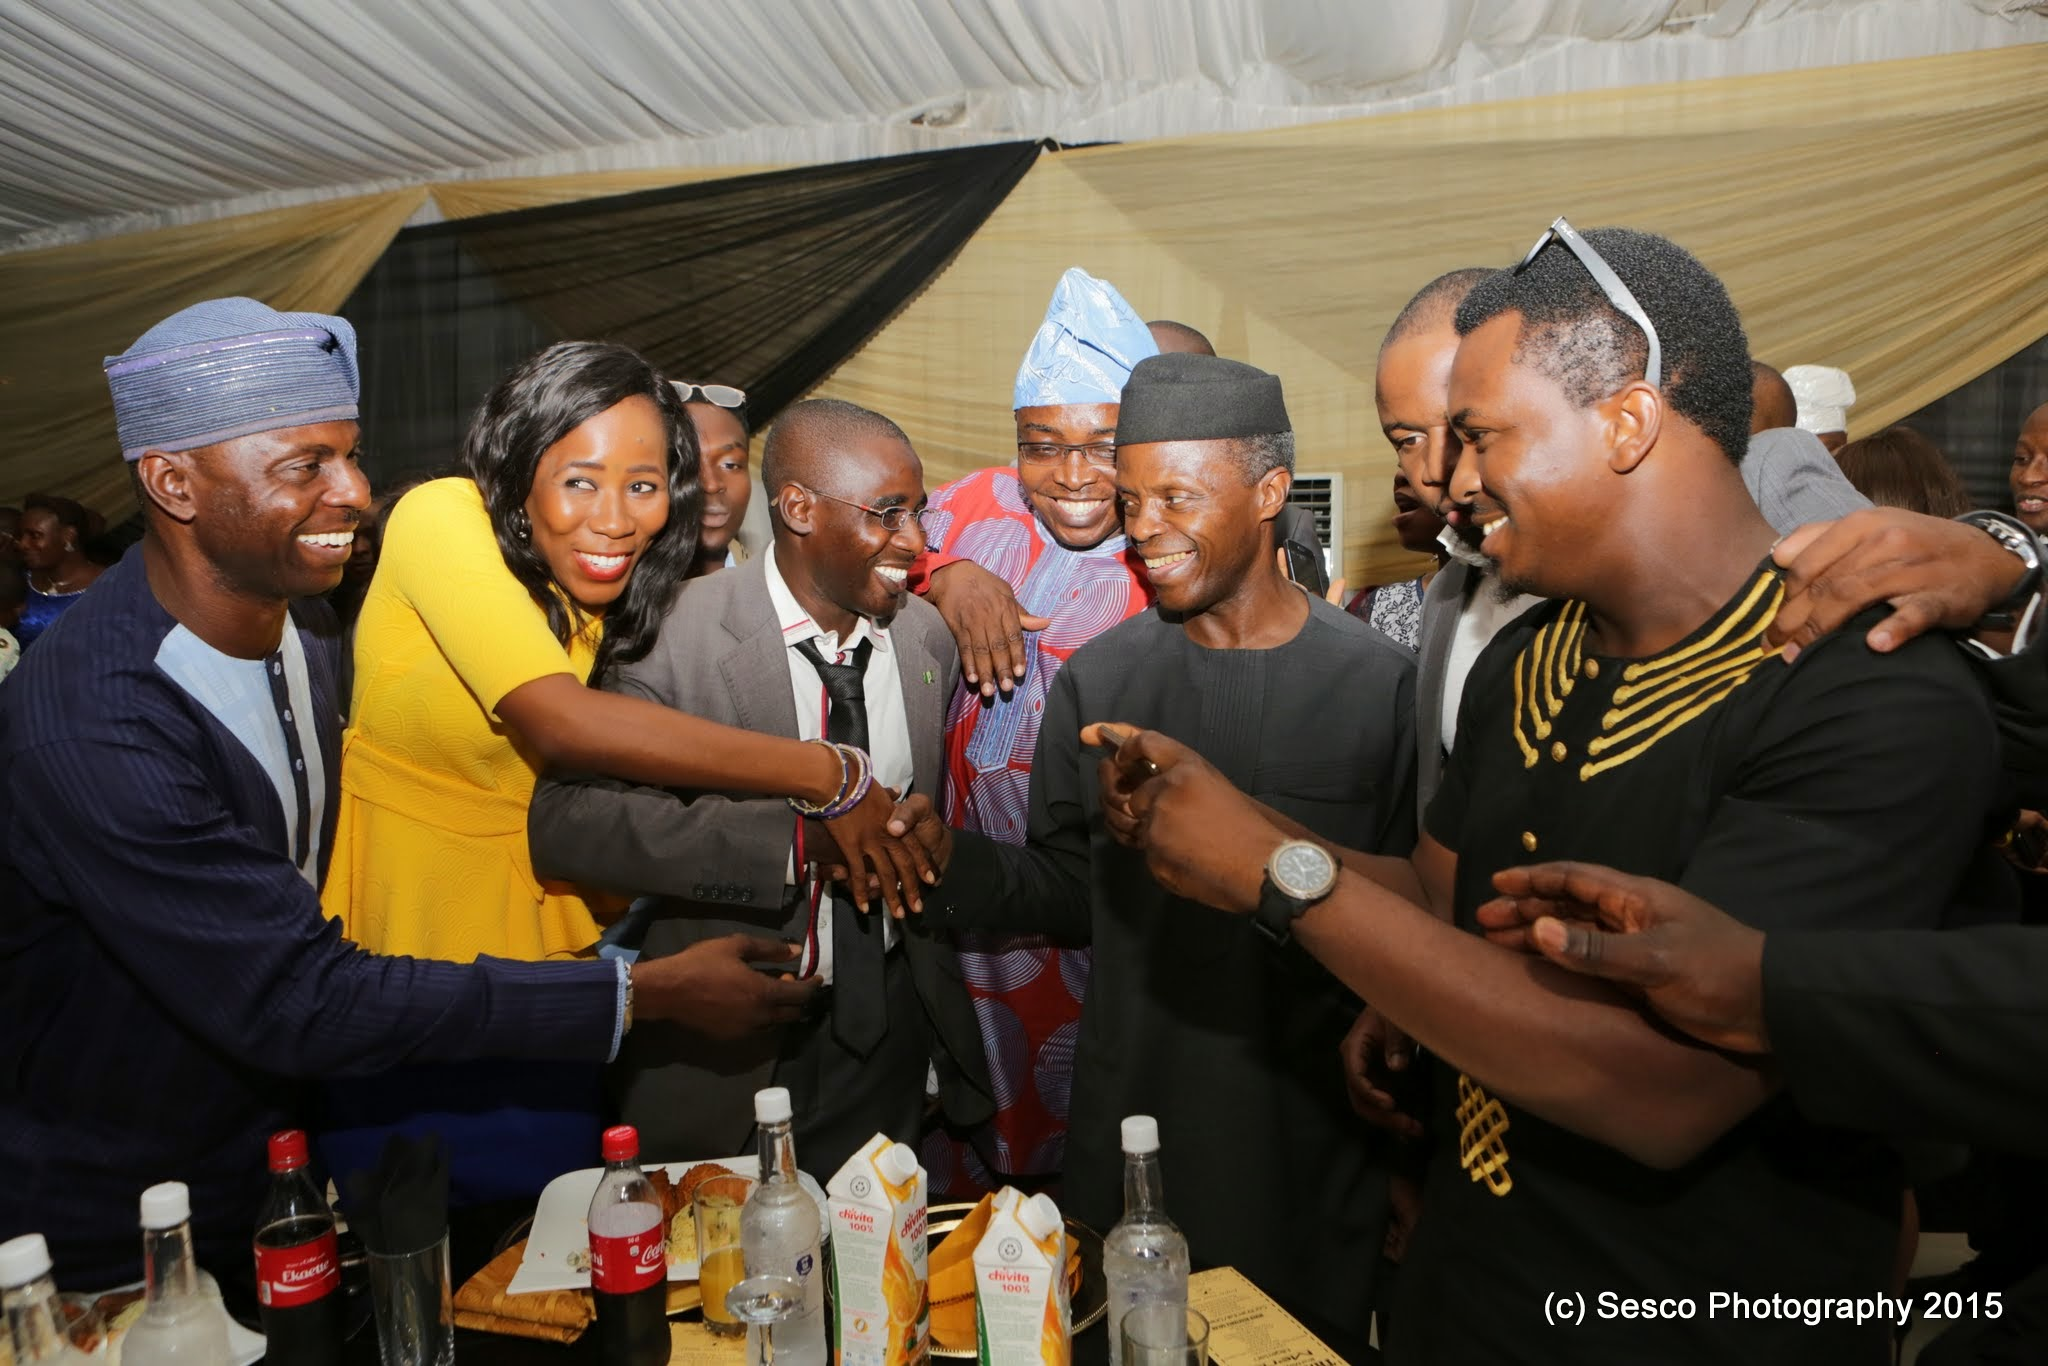 VP Osinbajo Attends The Campaign Volunteers Thank You Dinner On 02/05/2015